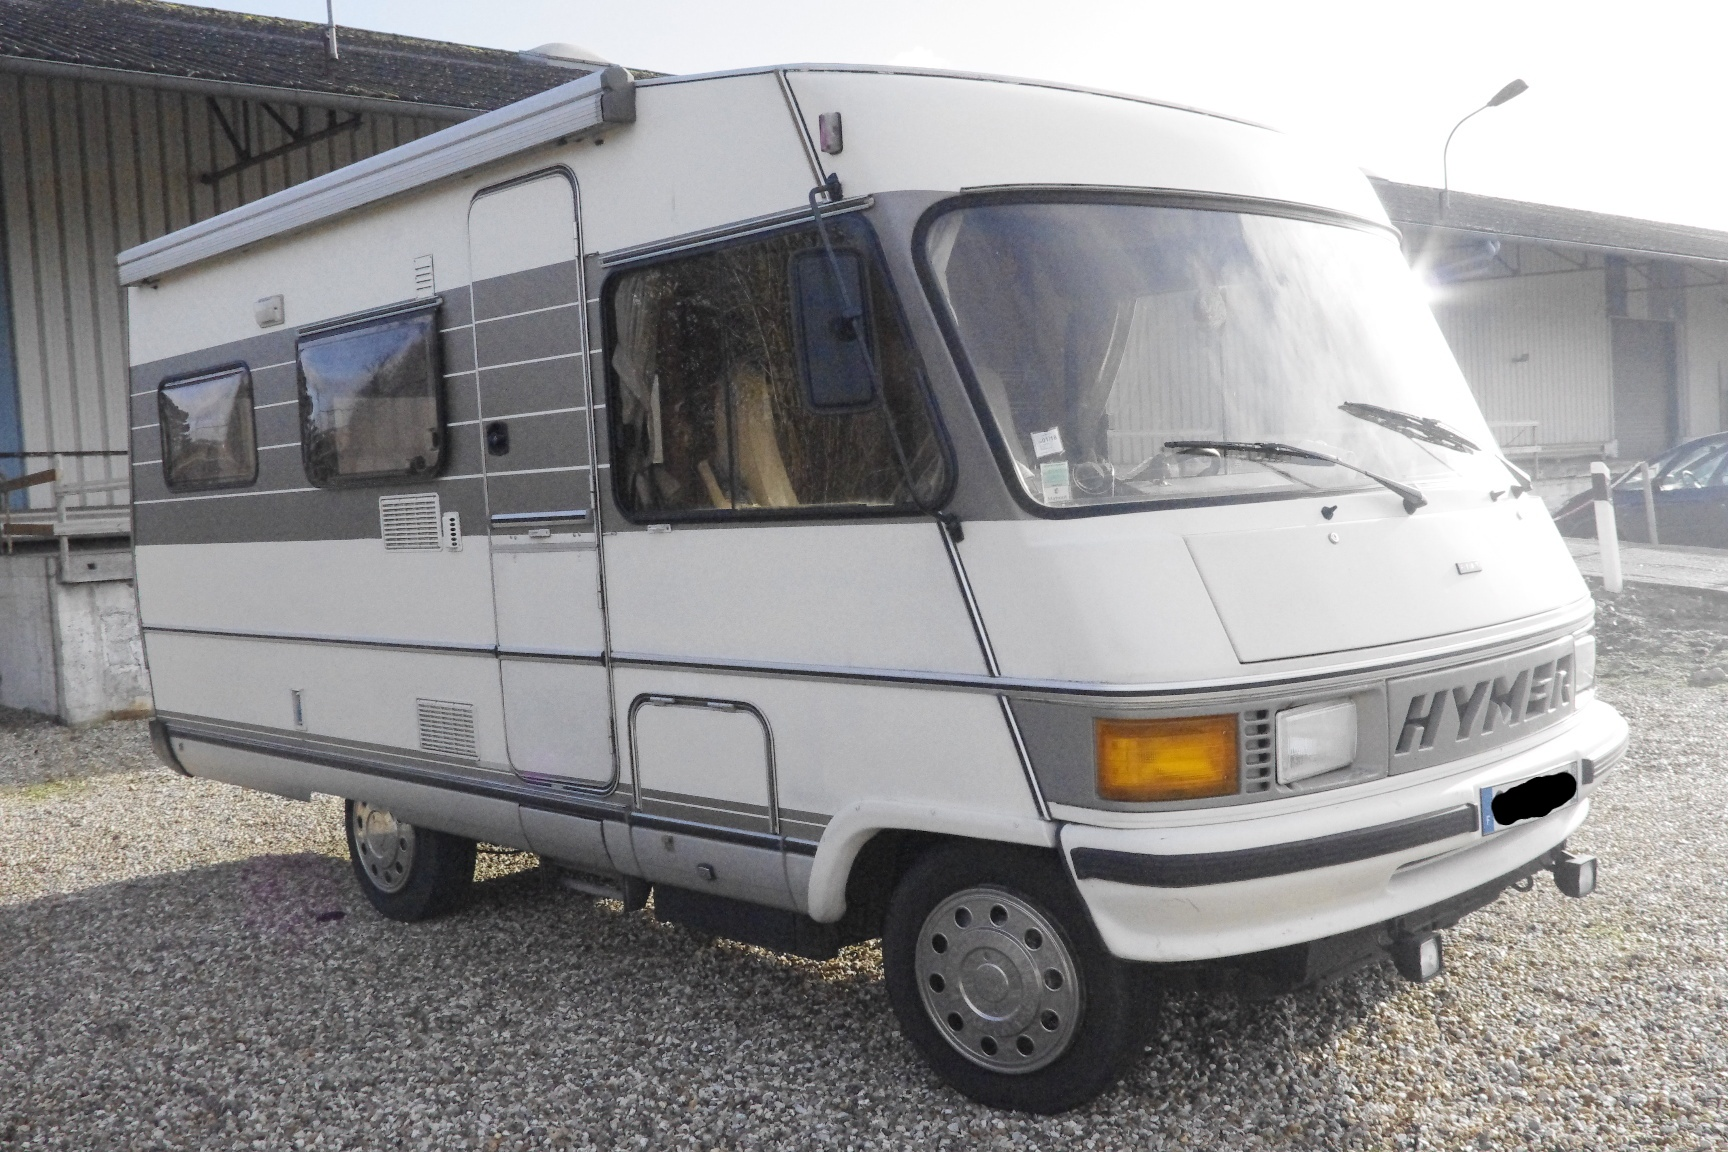 hymer b 594 occasion de 1990 fiat camping car en vente aubevoye eure 27. Black Bedroom Furniture Sets. Home Design Ideas